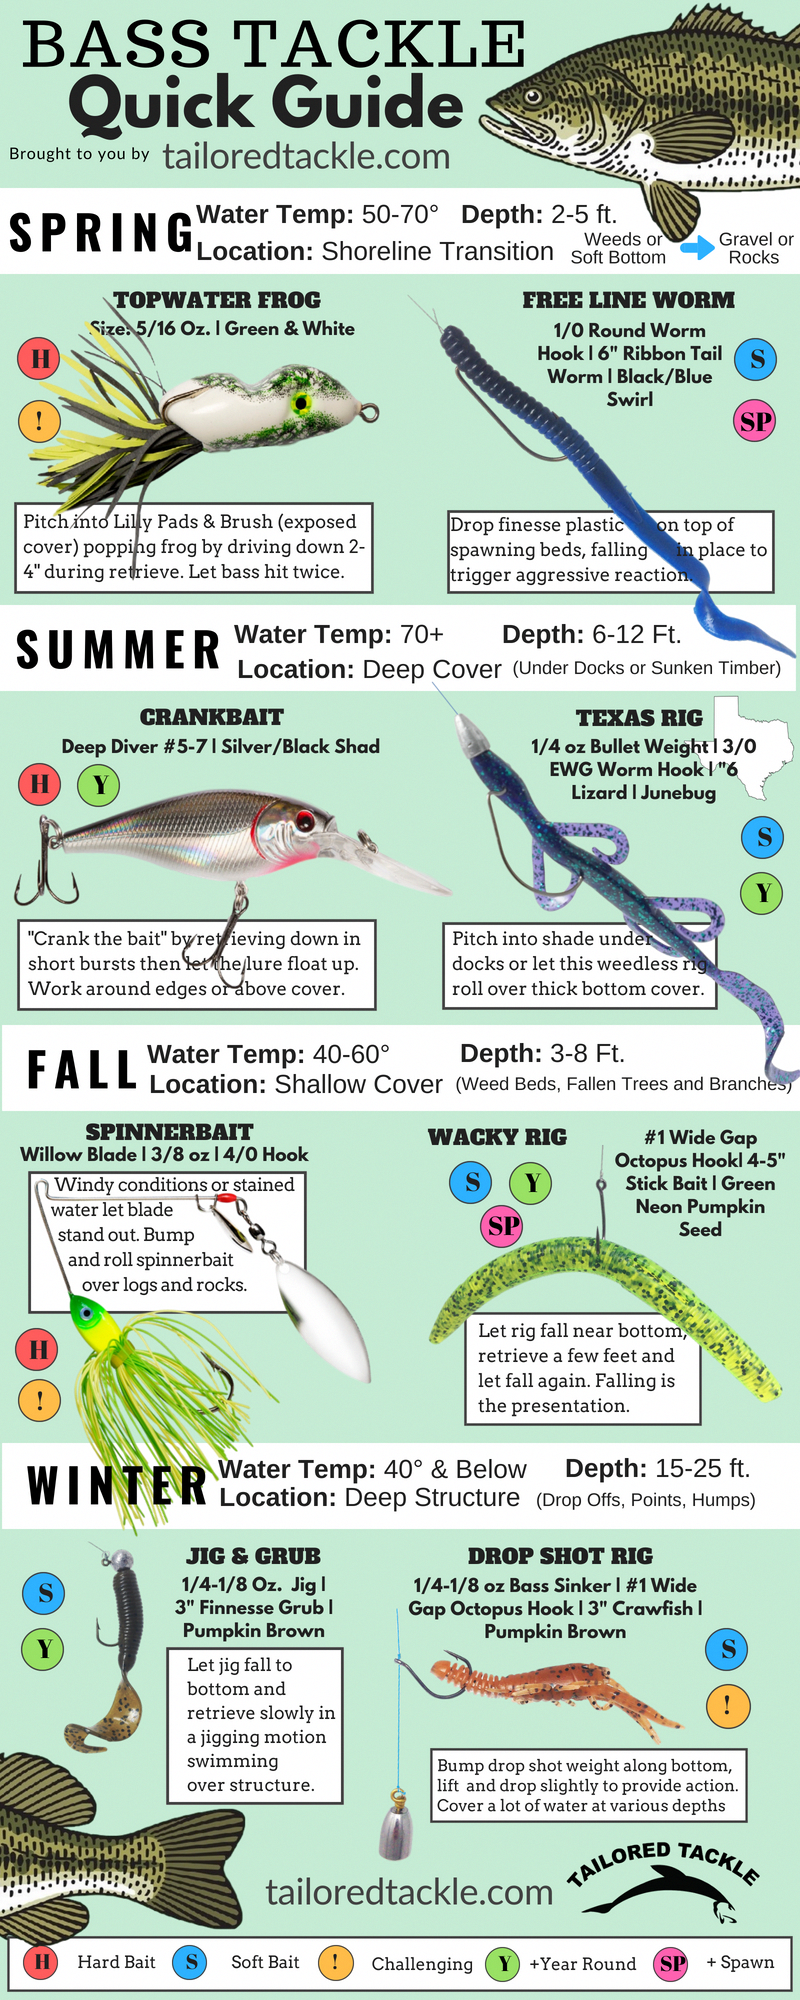 Bass Fishing Lure Quick Sheet A Fast Reference To Popular Bass Fishing Lures And Soft Bait Rigs So You C Bass Fishing Tips Crappie Fishing Bass Fishing Boats